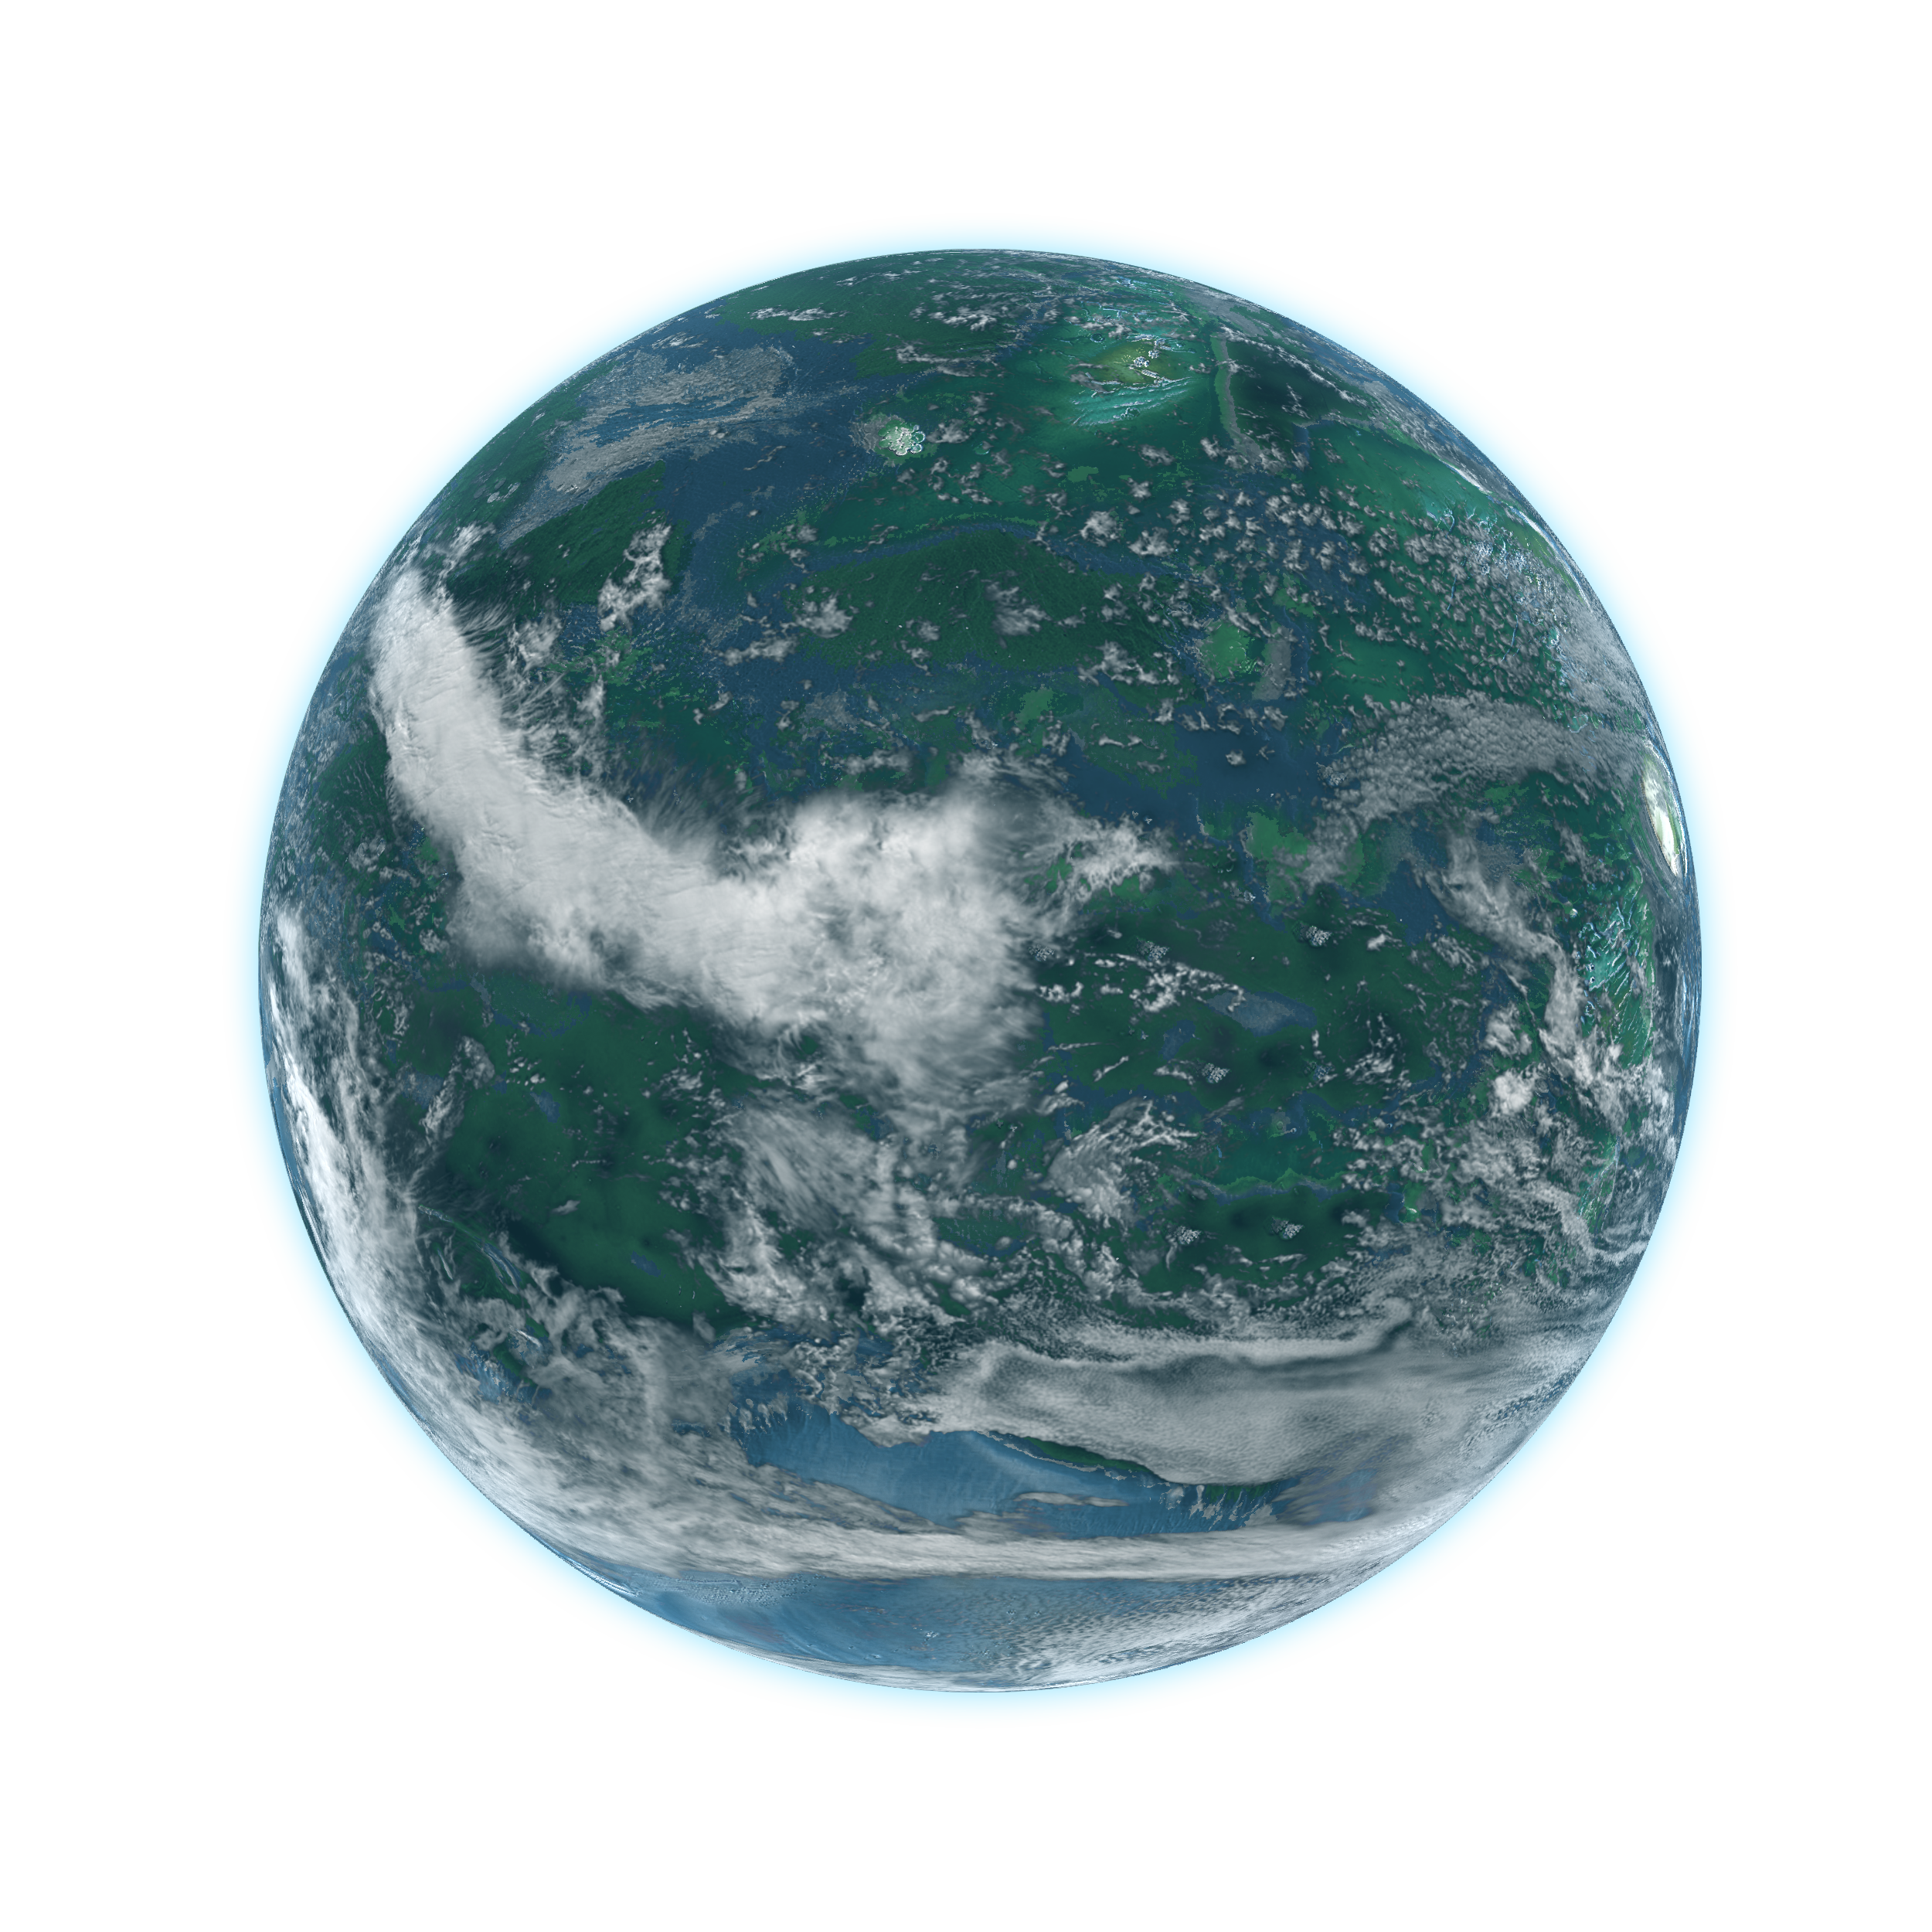 Fantasy planet png. Images of planets spacehero